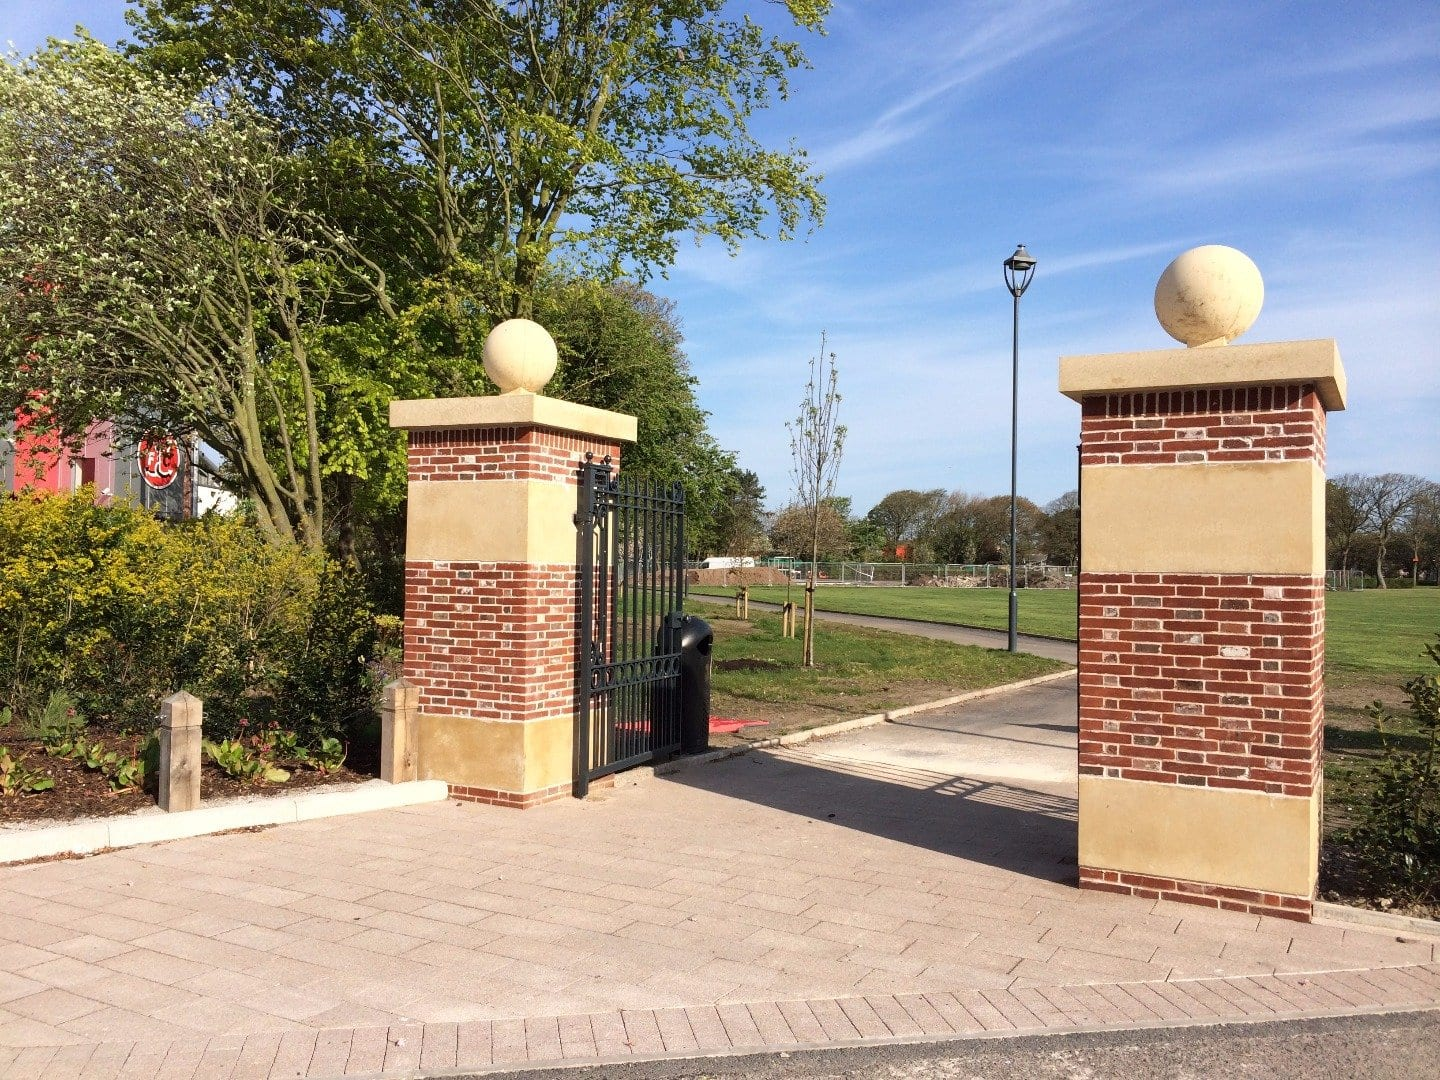 New entrance to Memorial Park at Highbury Avenue